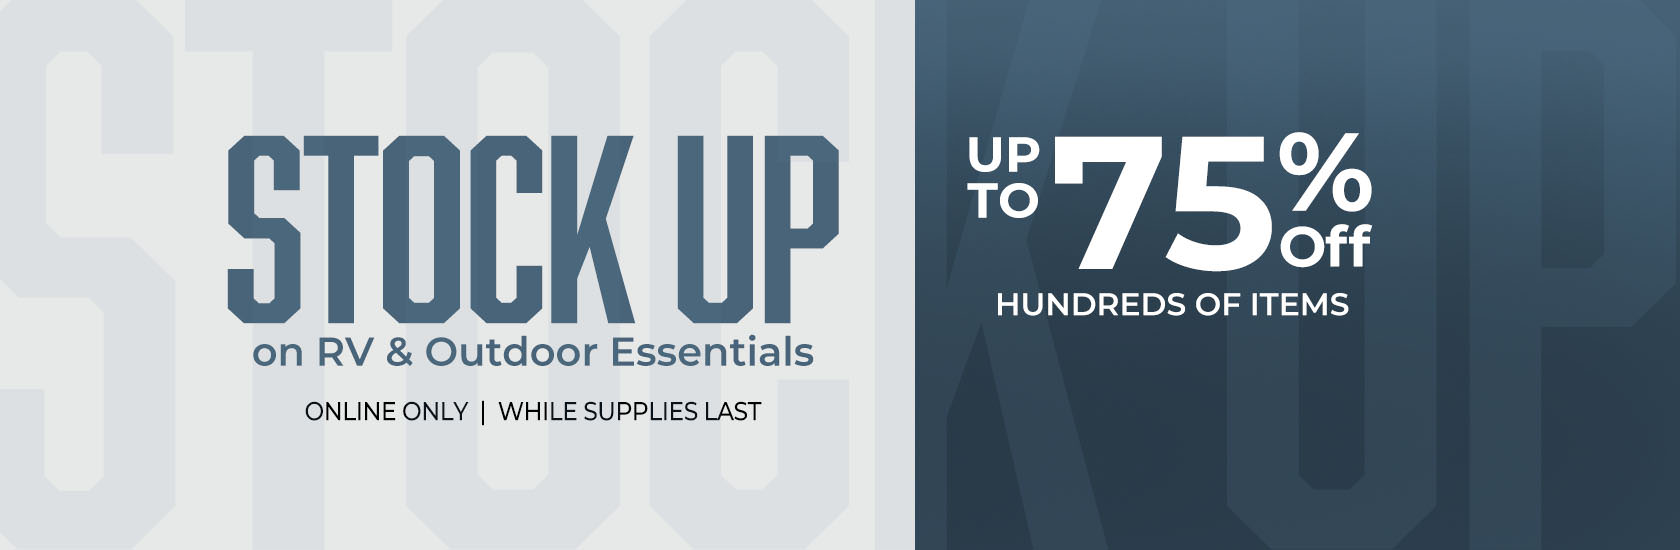 Stock up on RV & Outdoor Essentials